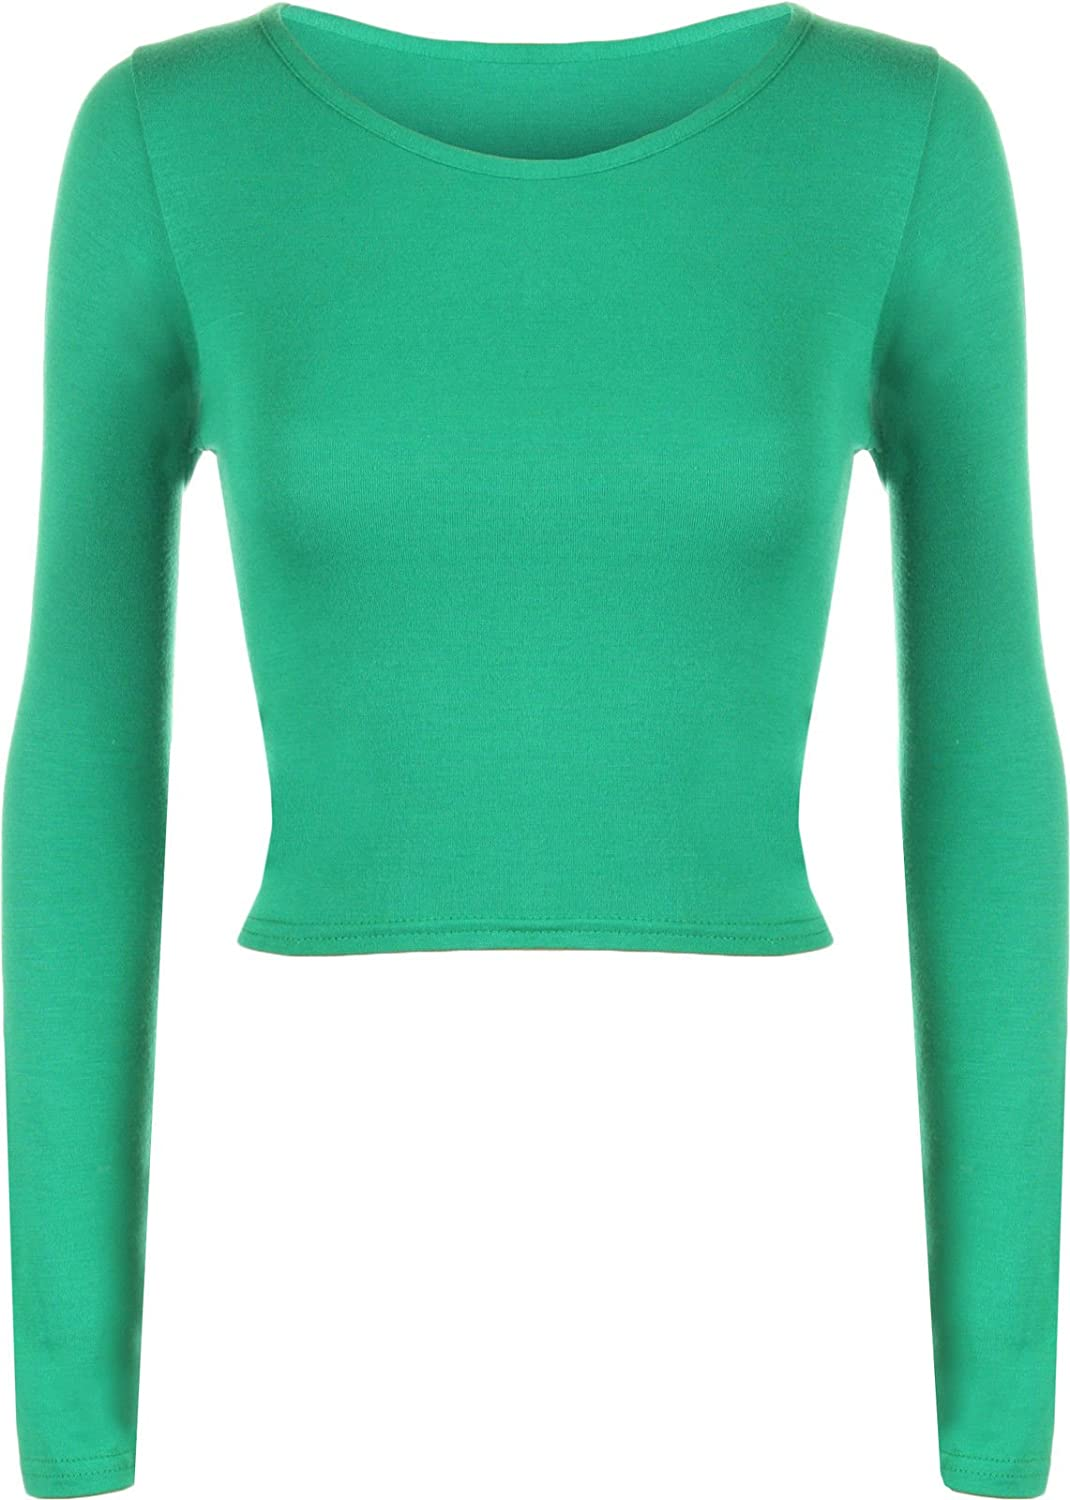 / 14 ELLE LOVES New da Donna Crop a Maniche Lunghe da Uomo Collo Rotondo Top 8/